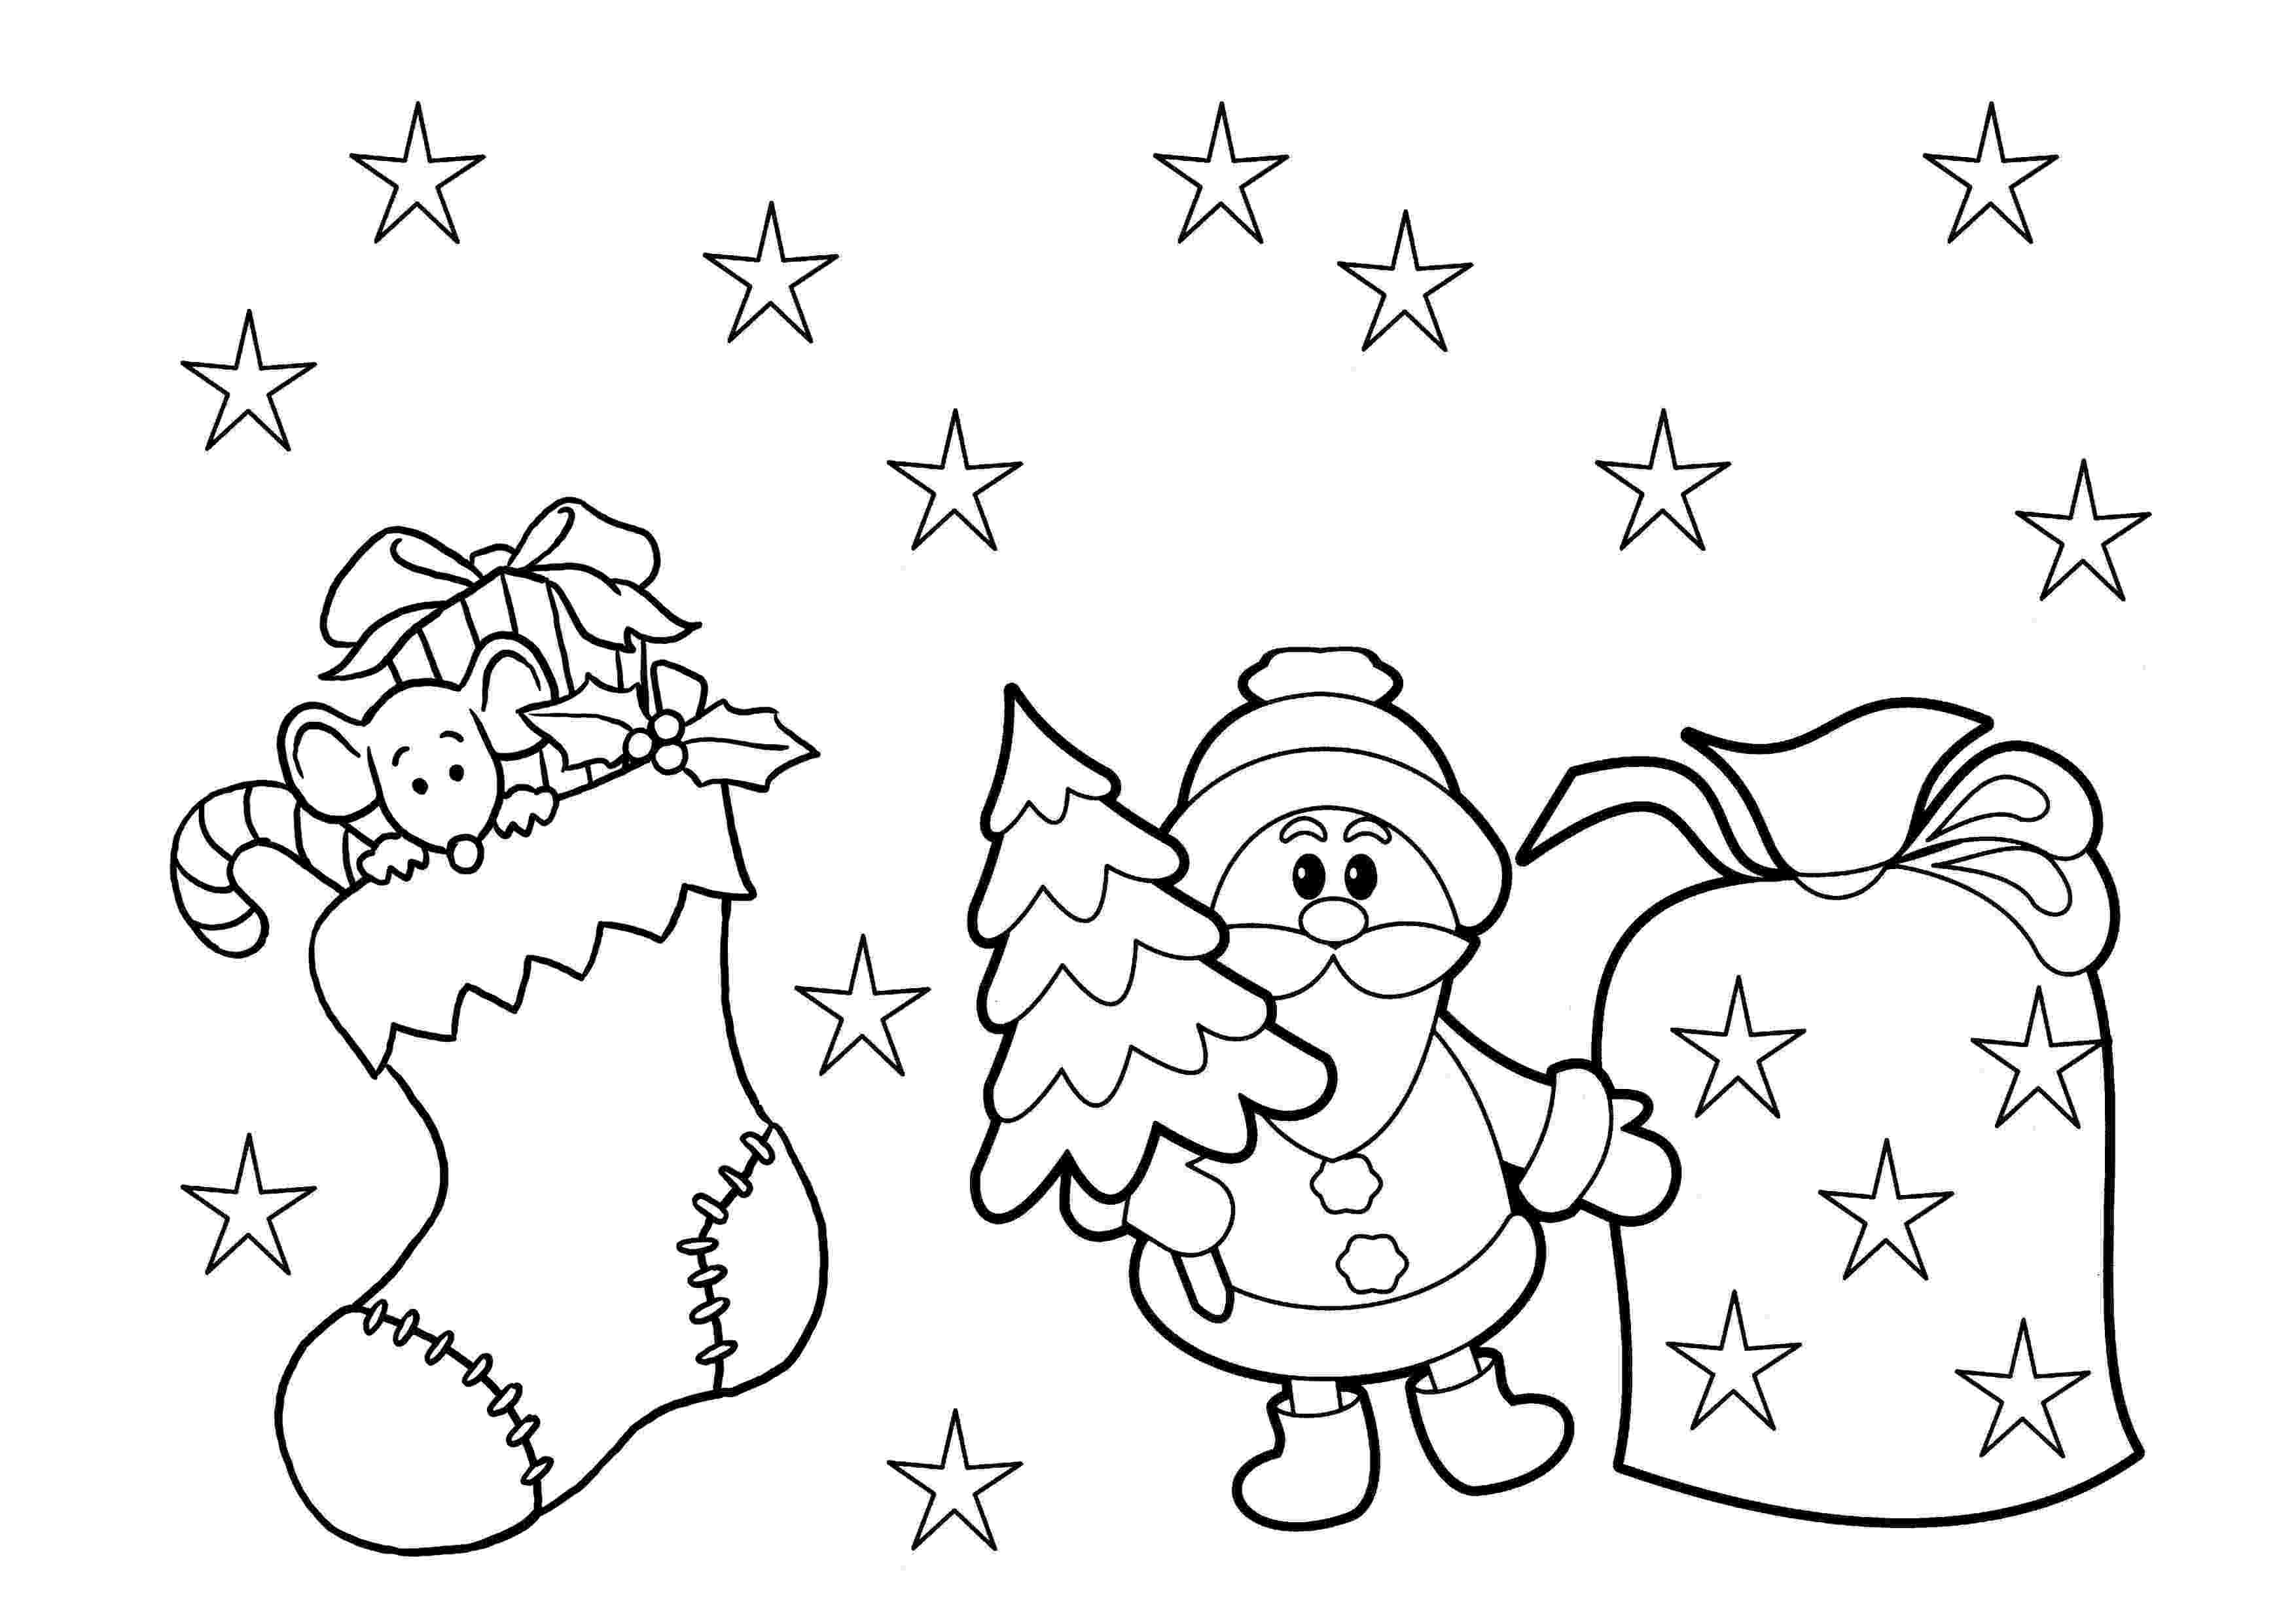 christmas colouring pages for preschoolers easy christmas coloring pages for preschoolers christmas for preschoolers colouring pages